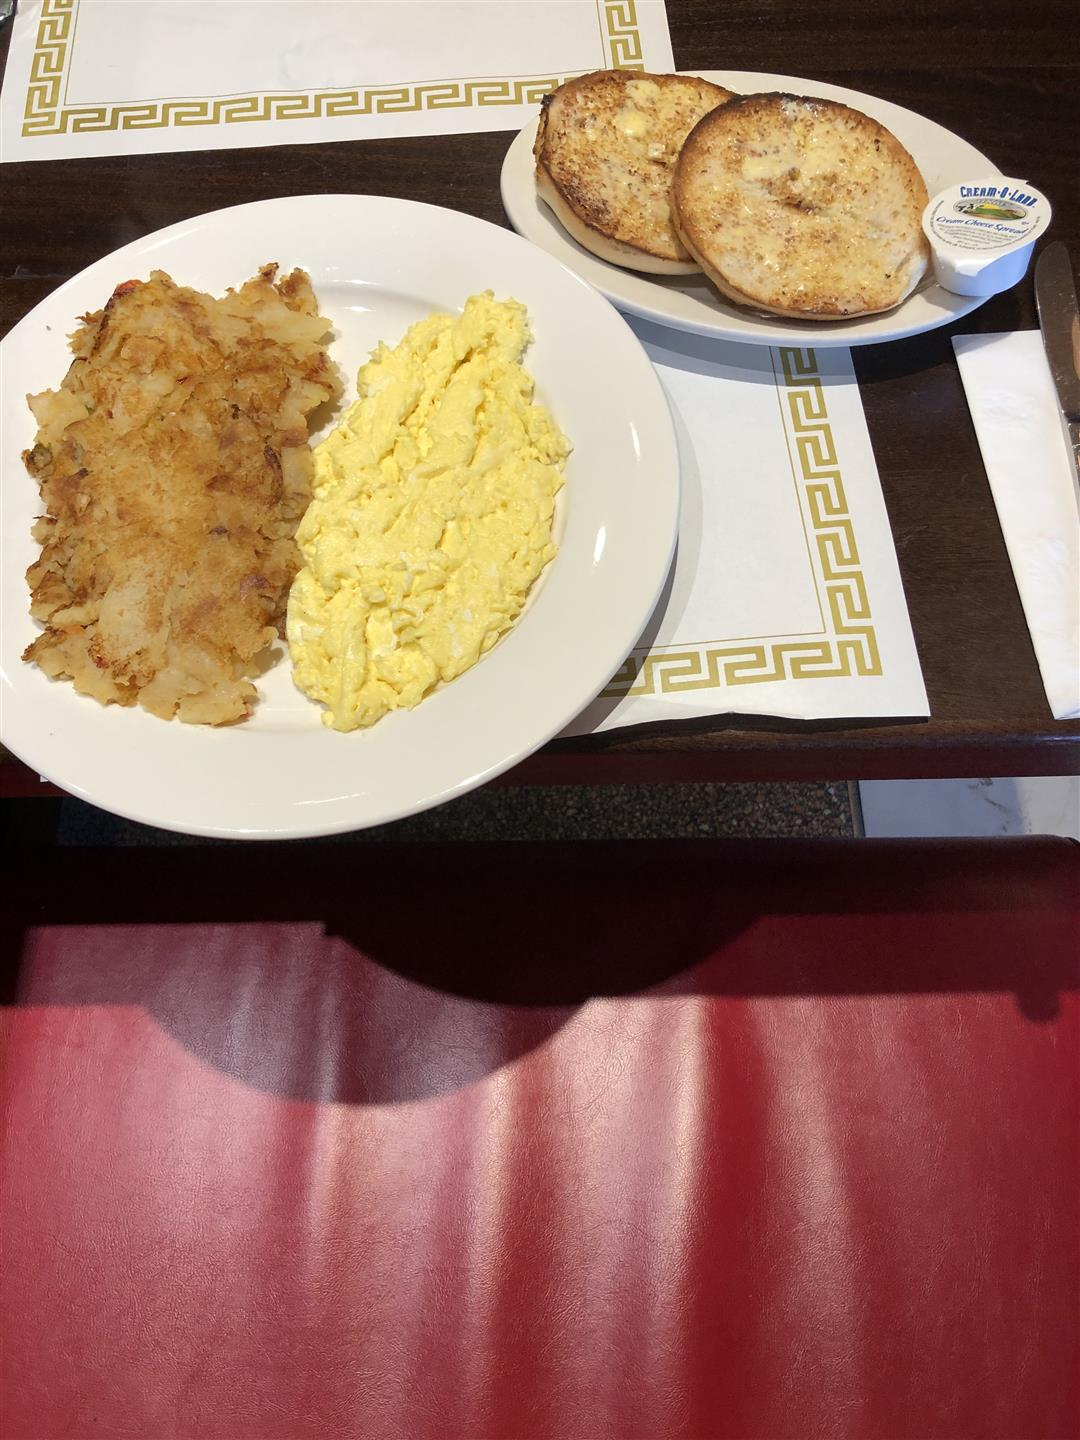 hash browns, scrambled eggs and a toasted bagel on a plate